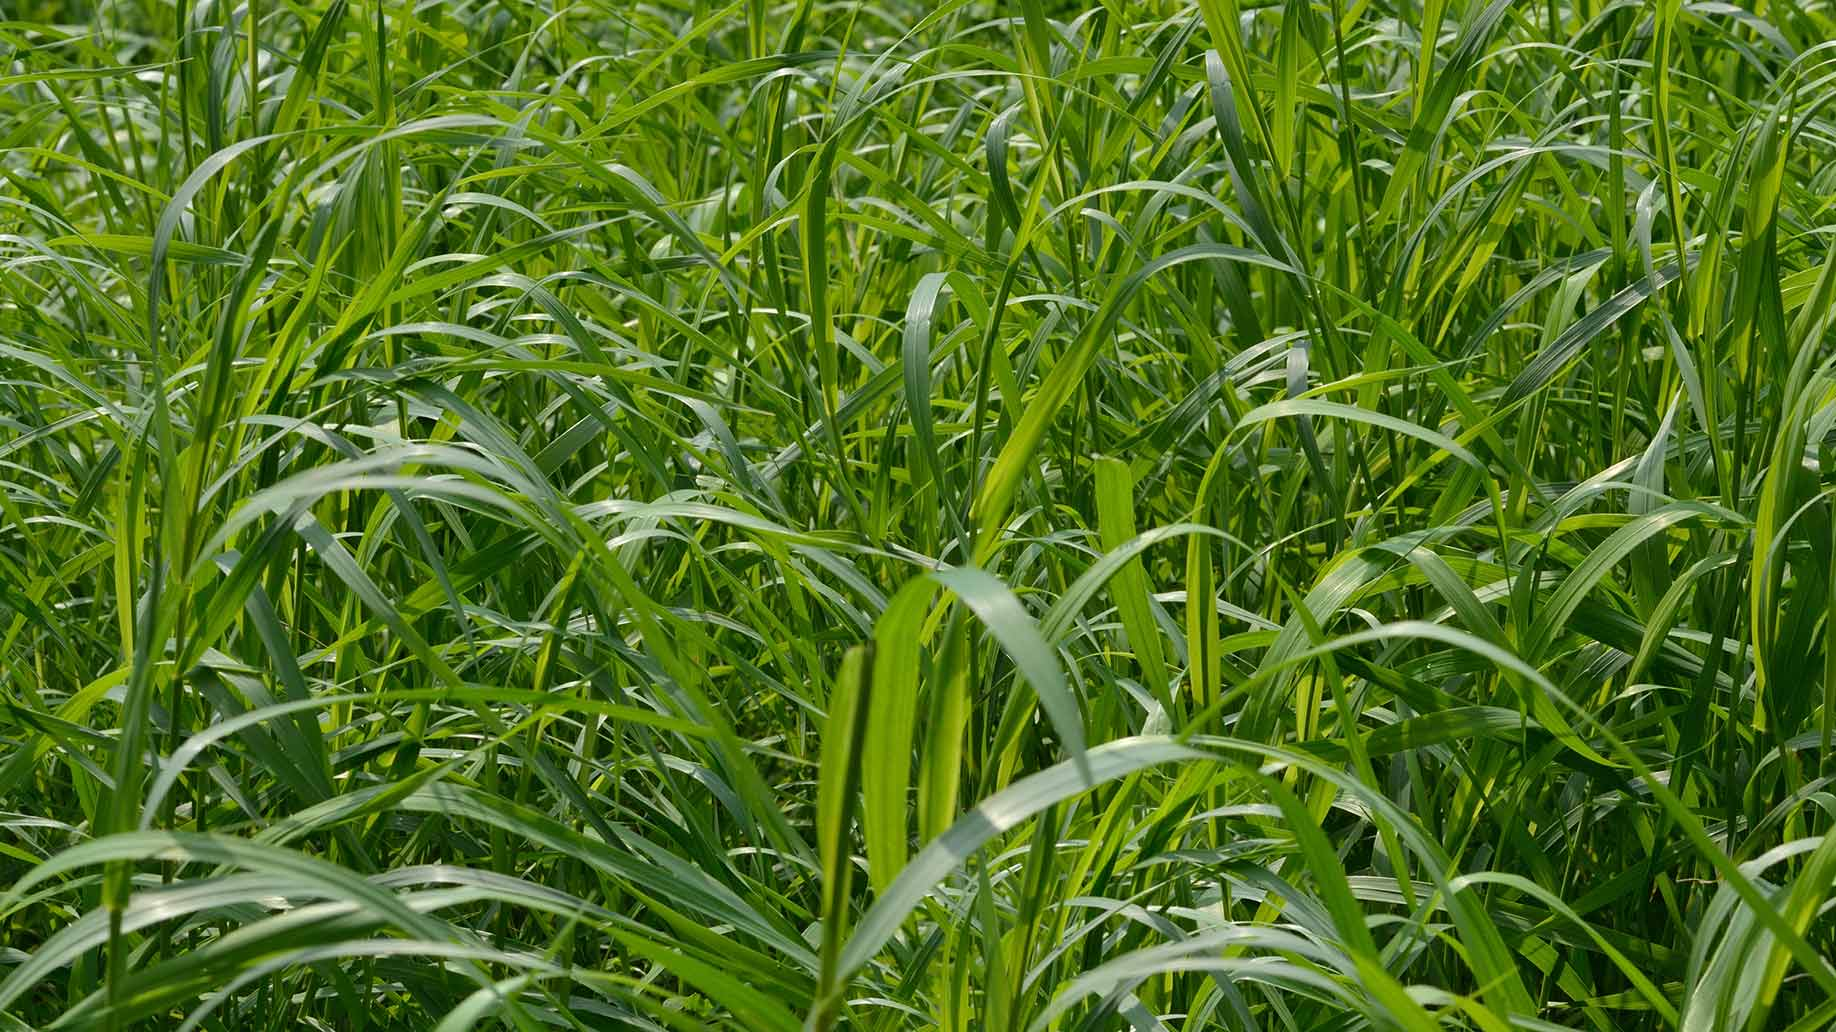 couch grass green field blades urinary tract infection uti natural remedies